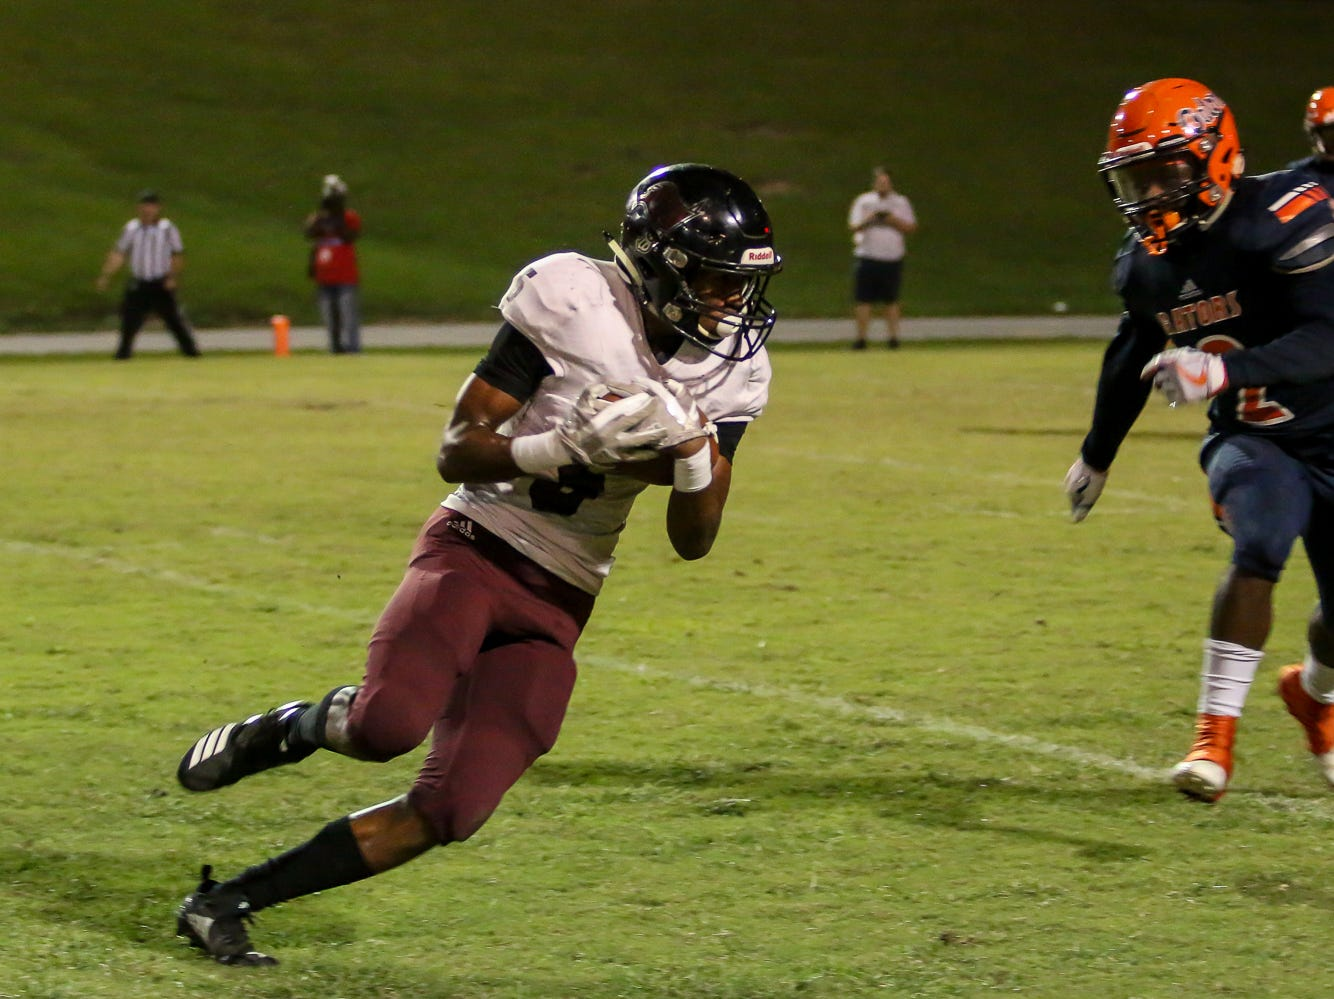 Navarre wide receiver Dante Wright (5) catches a pass from quarterback Marlon Courtney III, not pictured, and races to the outside of Escambia's Patrick Sanders (2) in the homecoming game at Escambia High School on Friday, October 5, 2018.